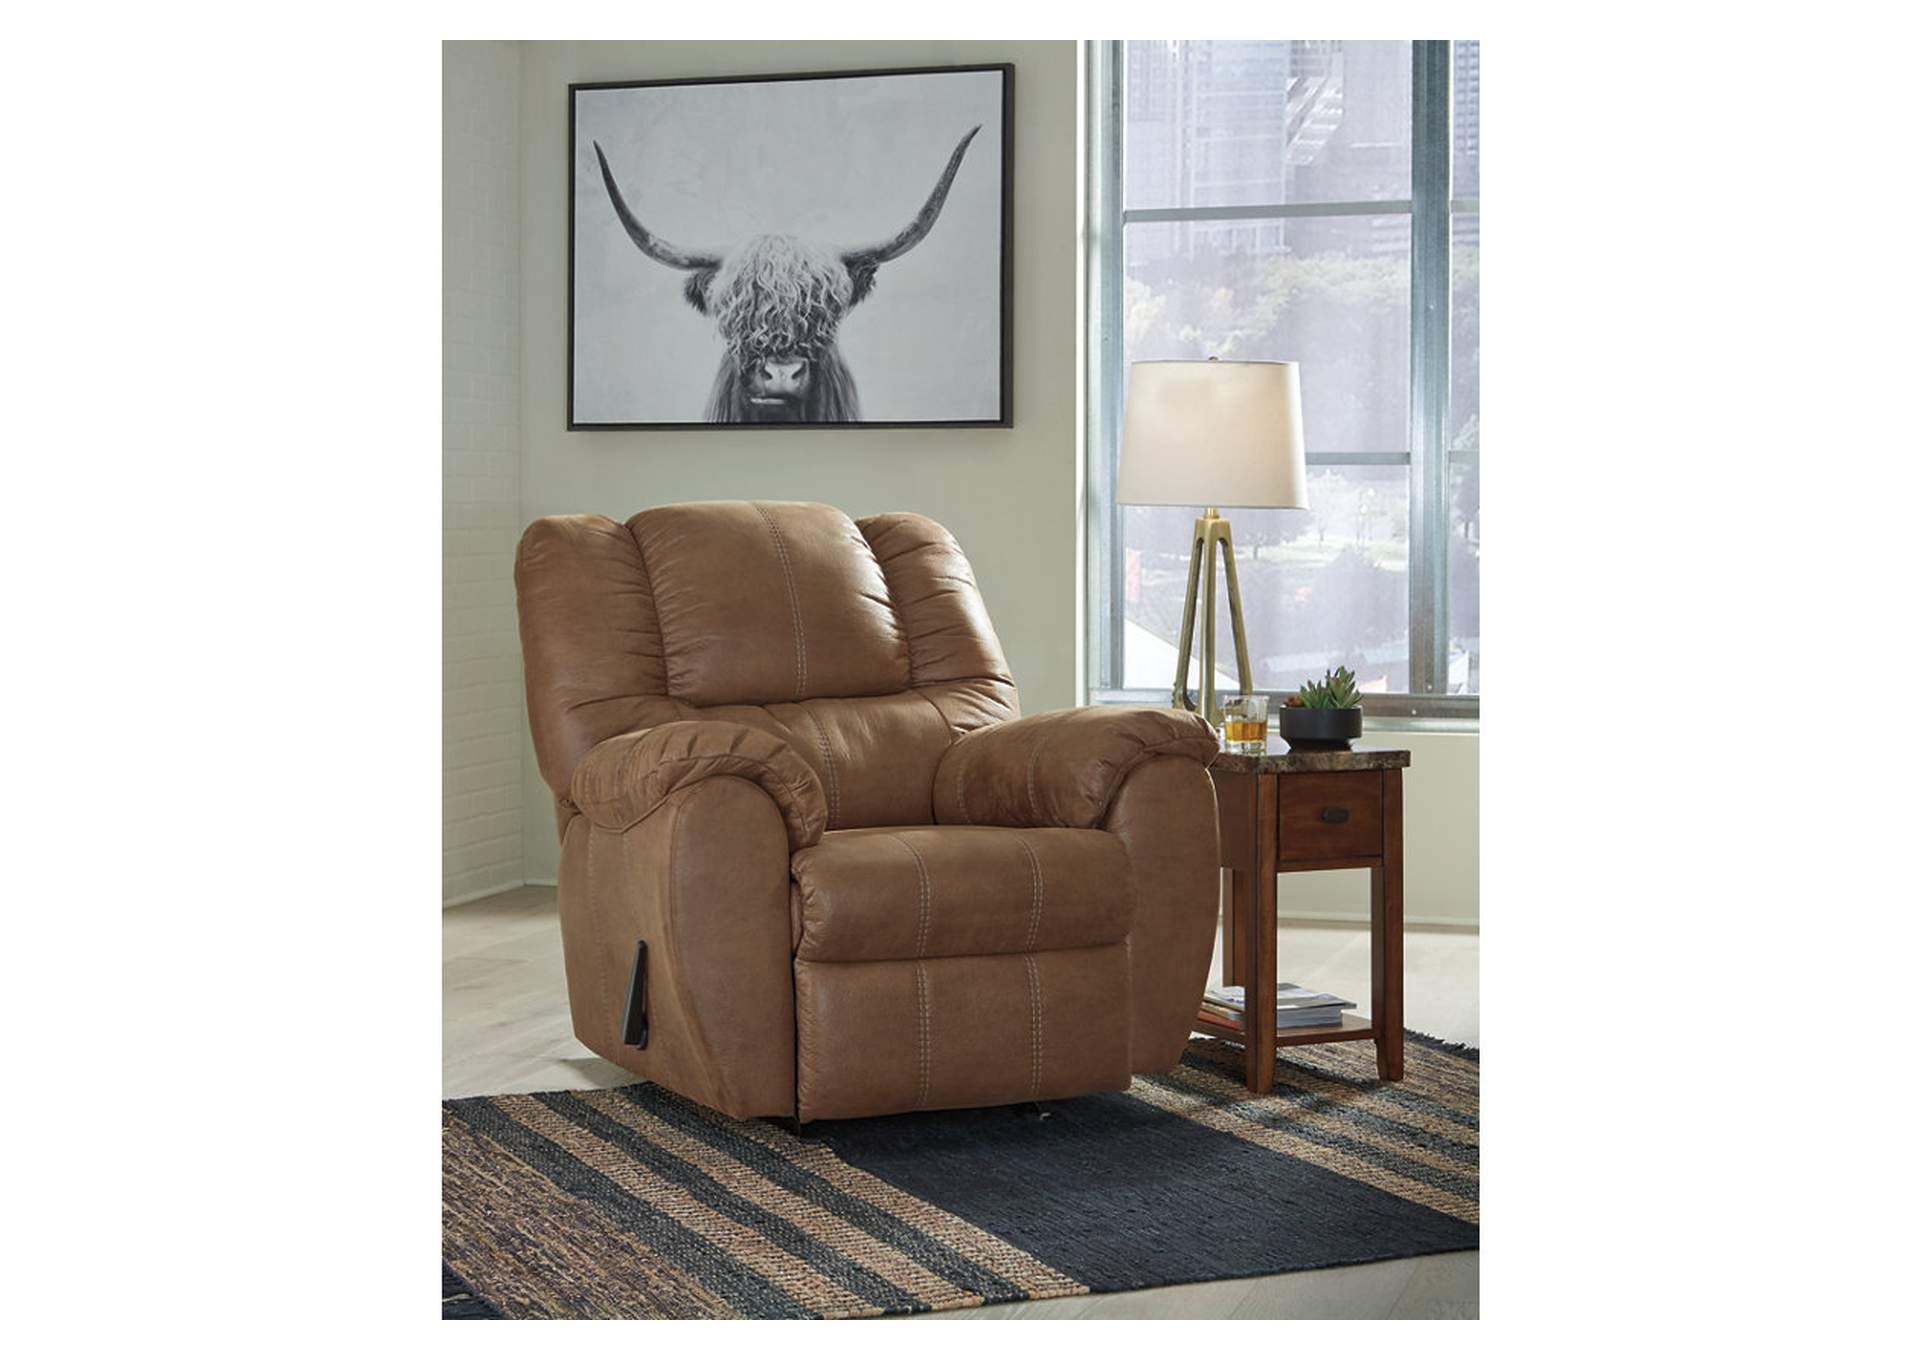 McGann Saddle Rocker Recliner,Signature Design By Ashley